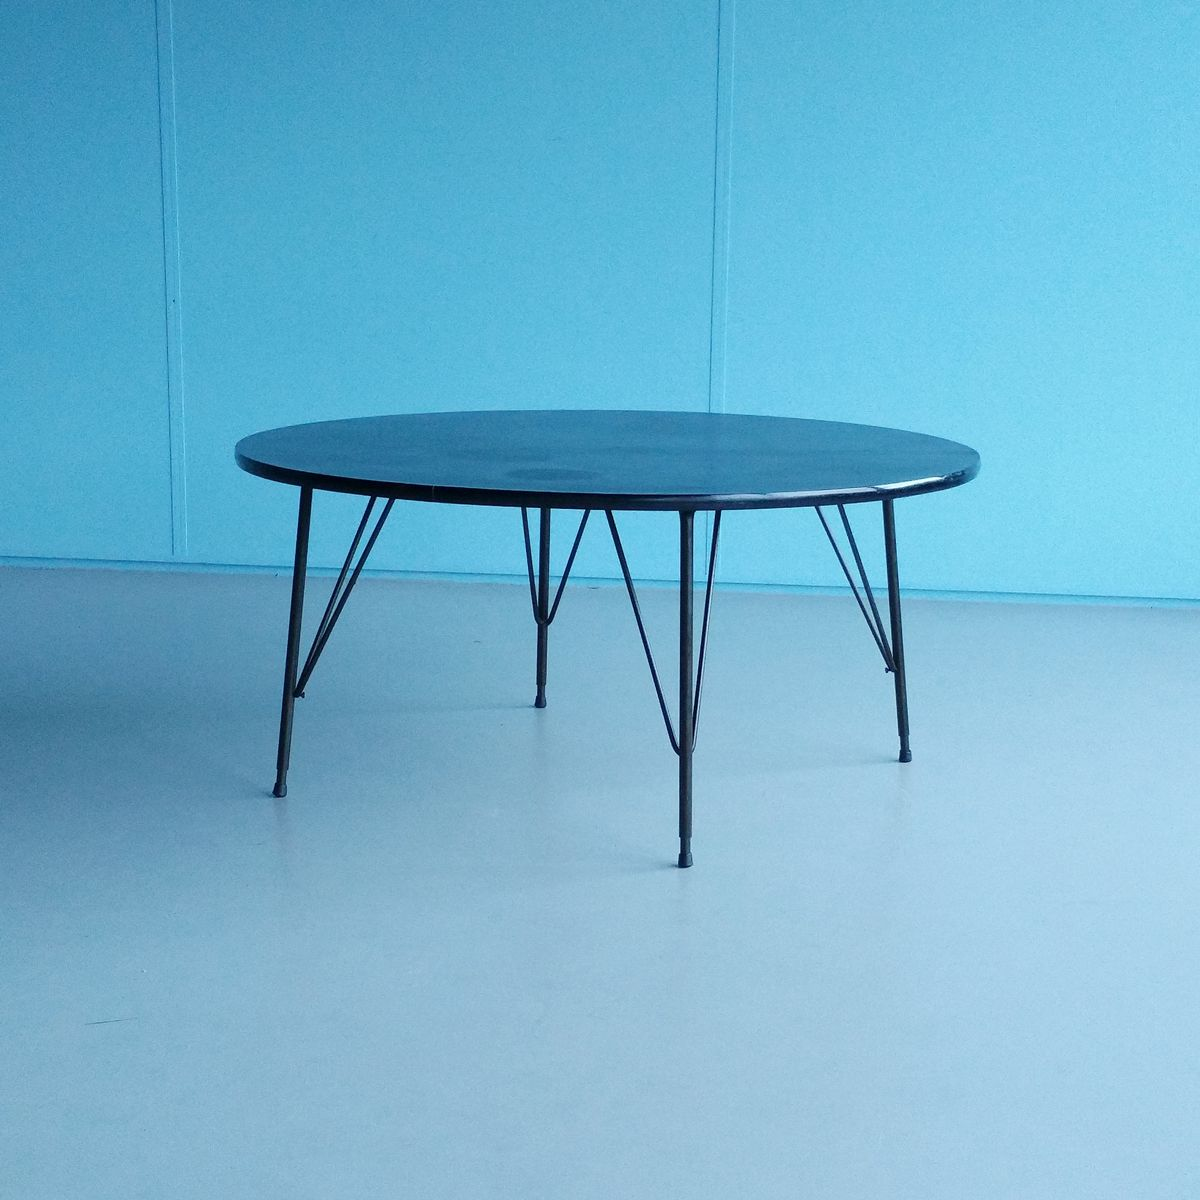 Convertible Dining or Coffee Table by Rudolf Wolf for  : convertible dining or coffee table by rudolf wolf for elsrijk 1957 1 from www.pamono.com size 1200 x 1200 jpeg 92kB